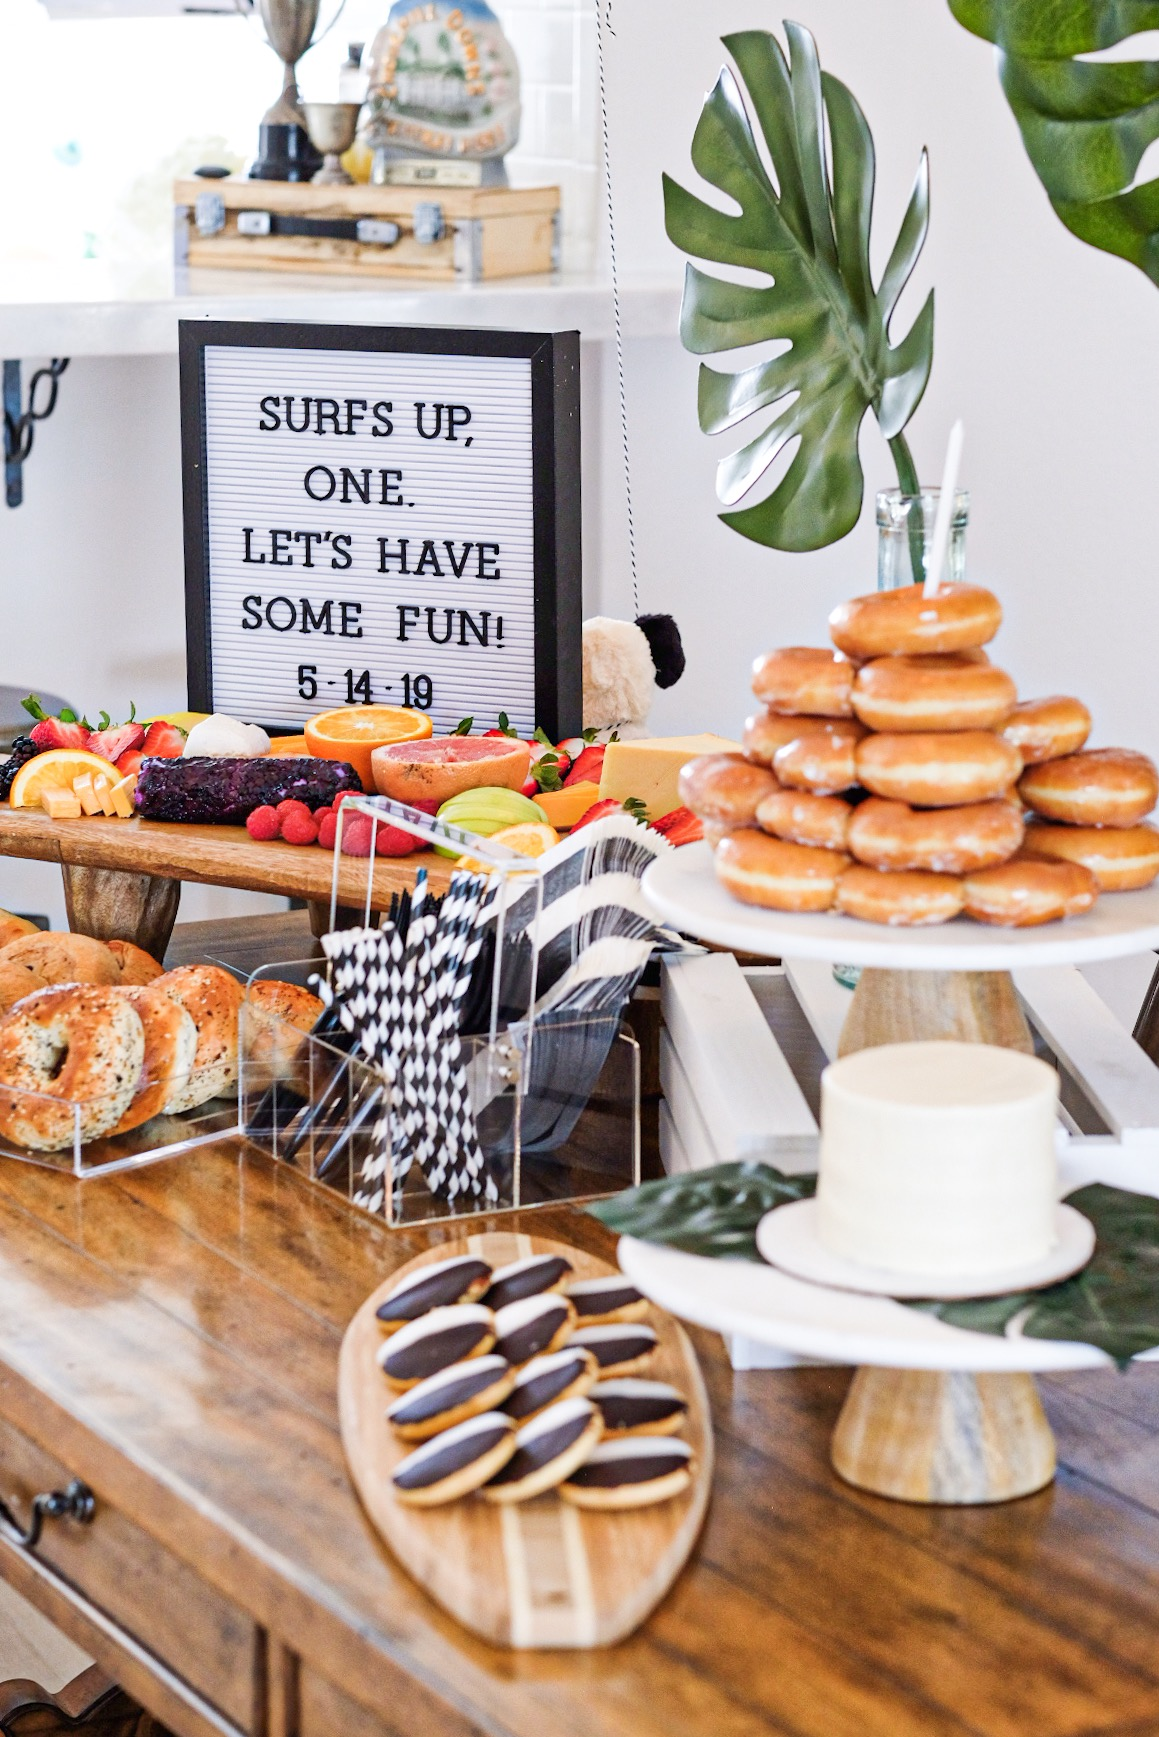 Modern surfer theme first birthday party.  Black and white boy birthday decor.  Krispy Kreme donut cake. Surfboard cheese board.